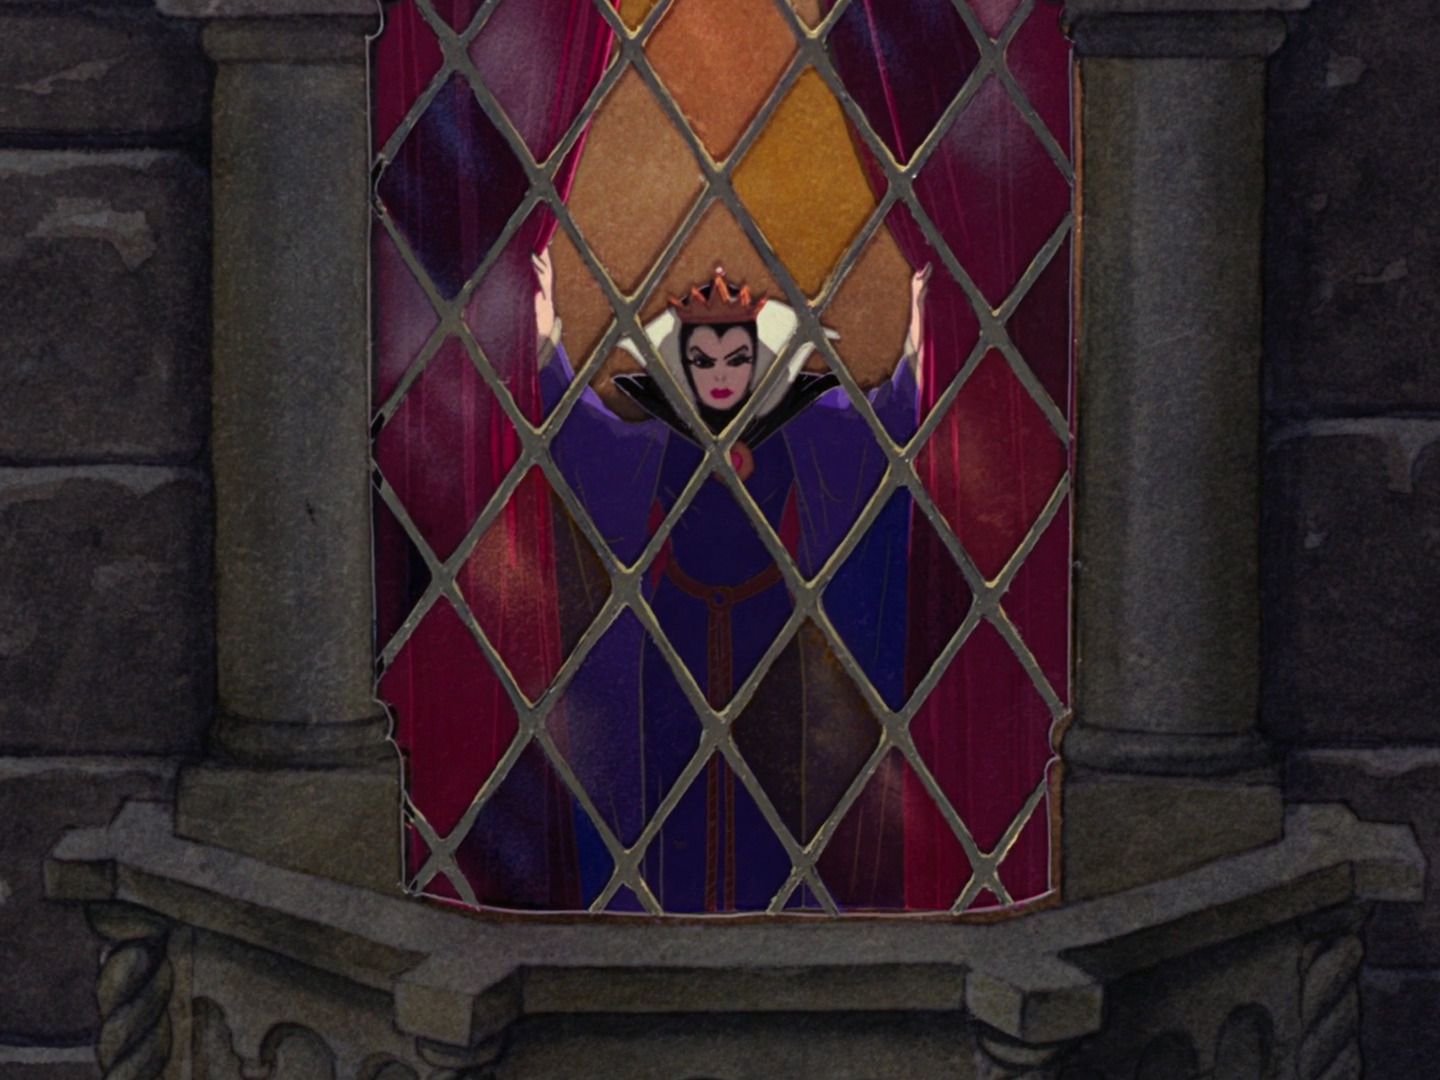 Snow White and the Seven Dwarfs vs. Sneewittchen ...Disney Evil Queen Song